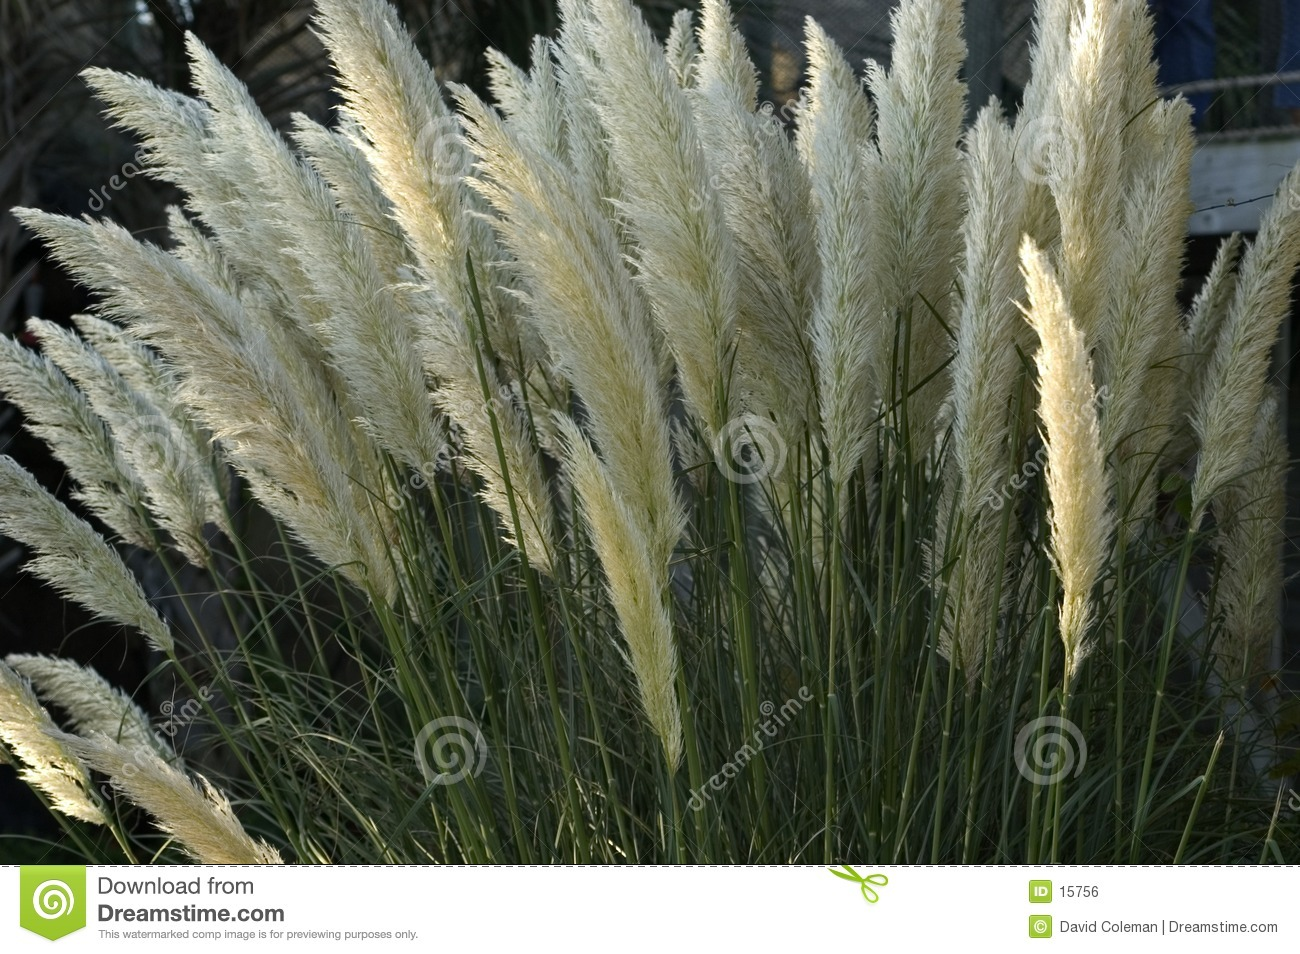 Tall Grass in Bloom